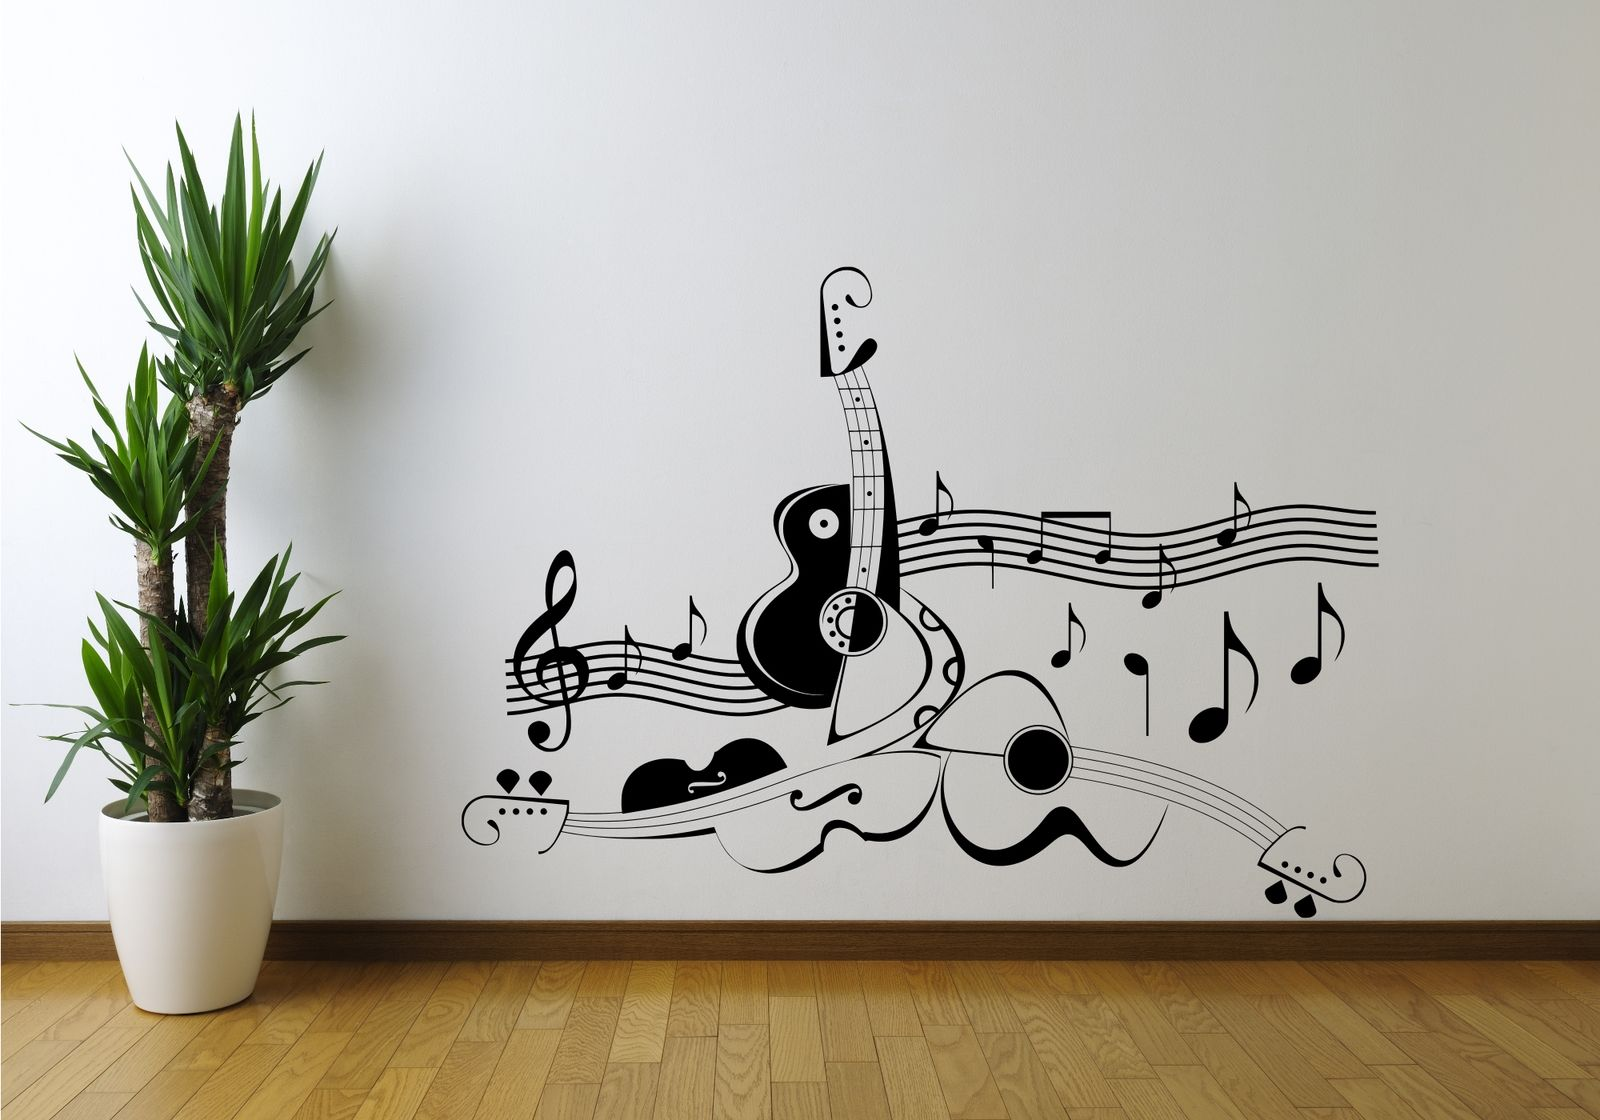 guitar music note symbol violin wall art sticker decal. Black Bedroom Furniture Sets. Home Design Ideas